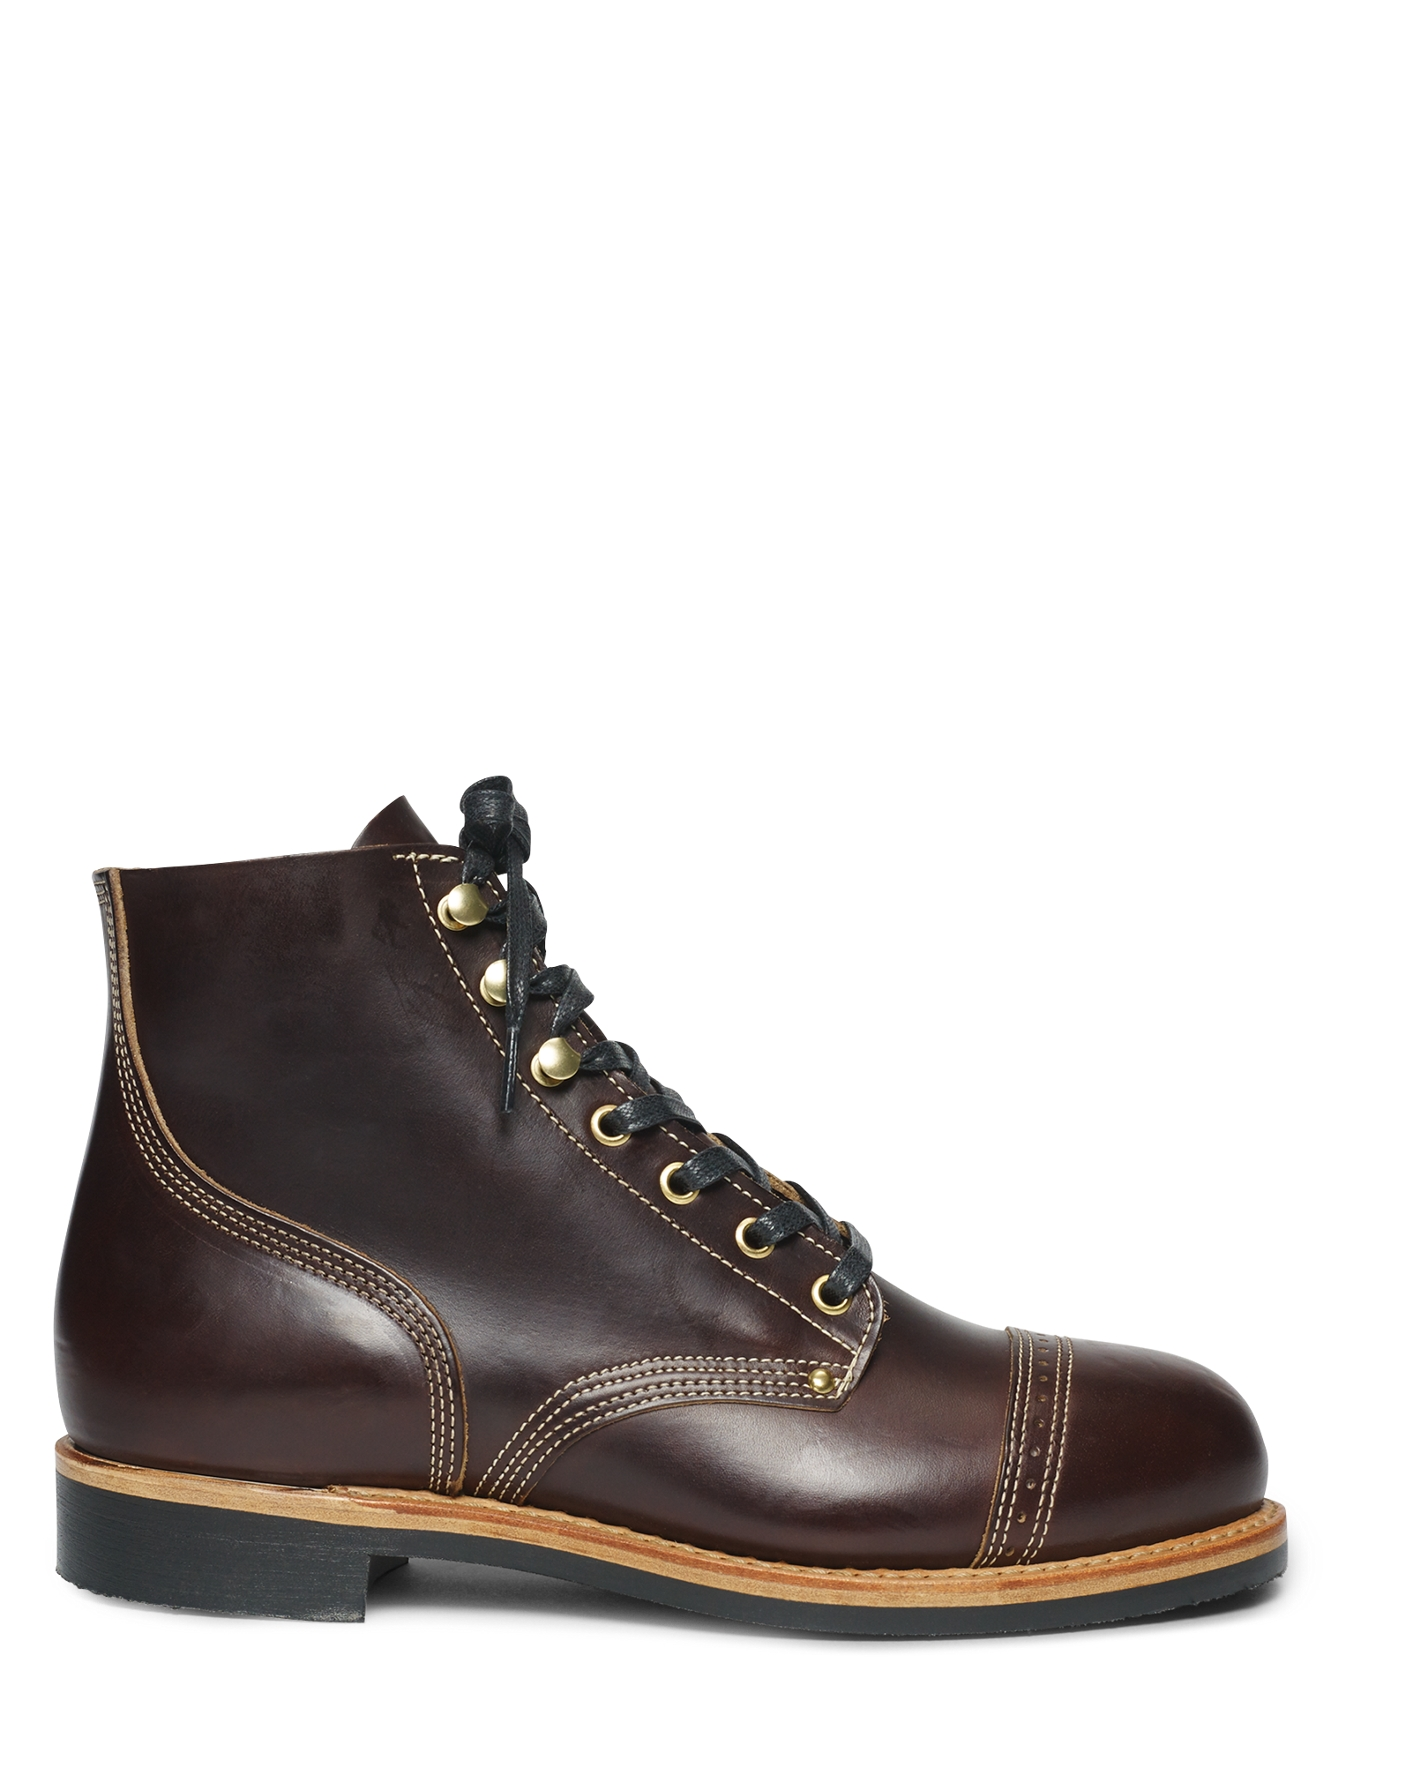 Men's Boots - Leather, Suede, & Work Boots | Ralph Lauren